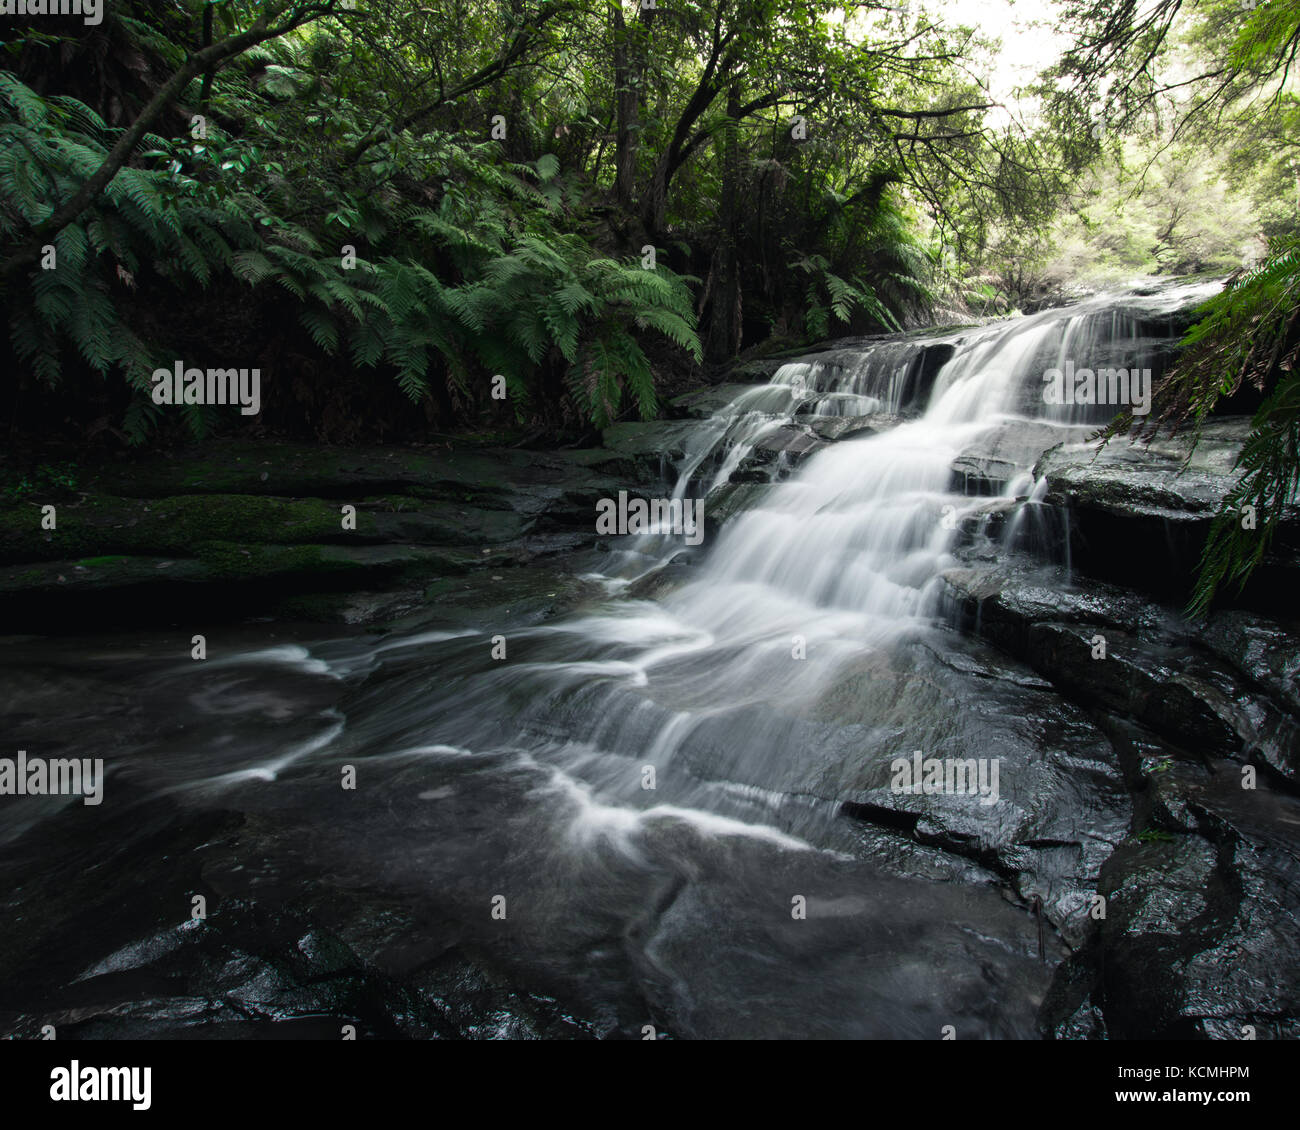 Smooth flowing water over rocks in the lush rainforest of Blue Mountains, Australia - Stock Image